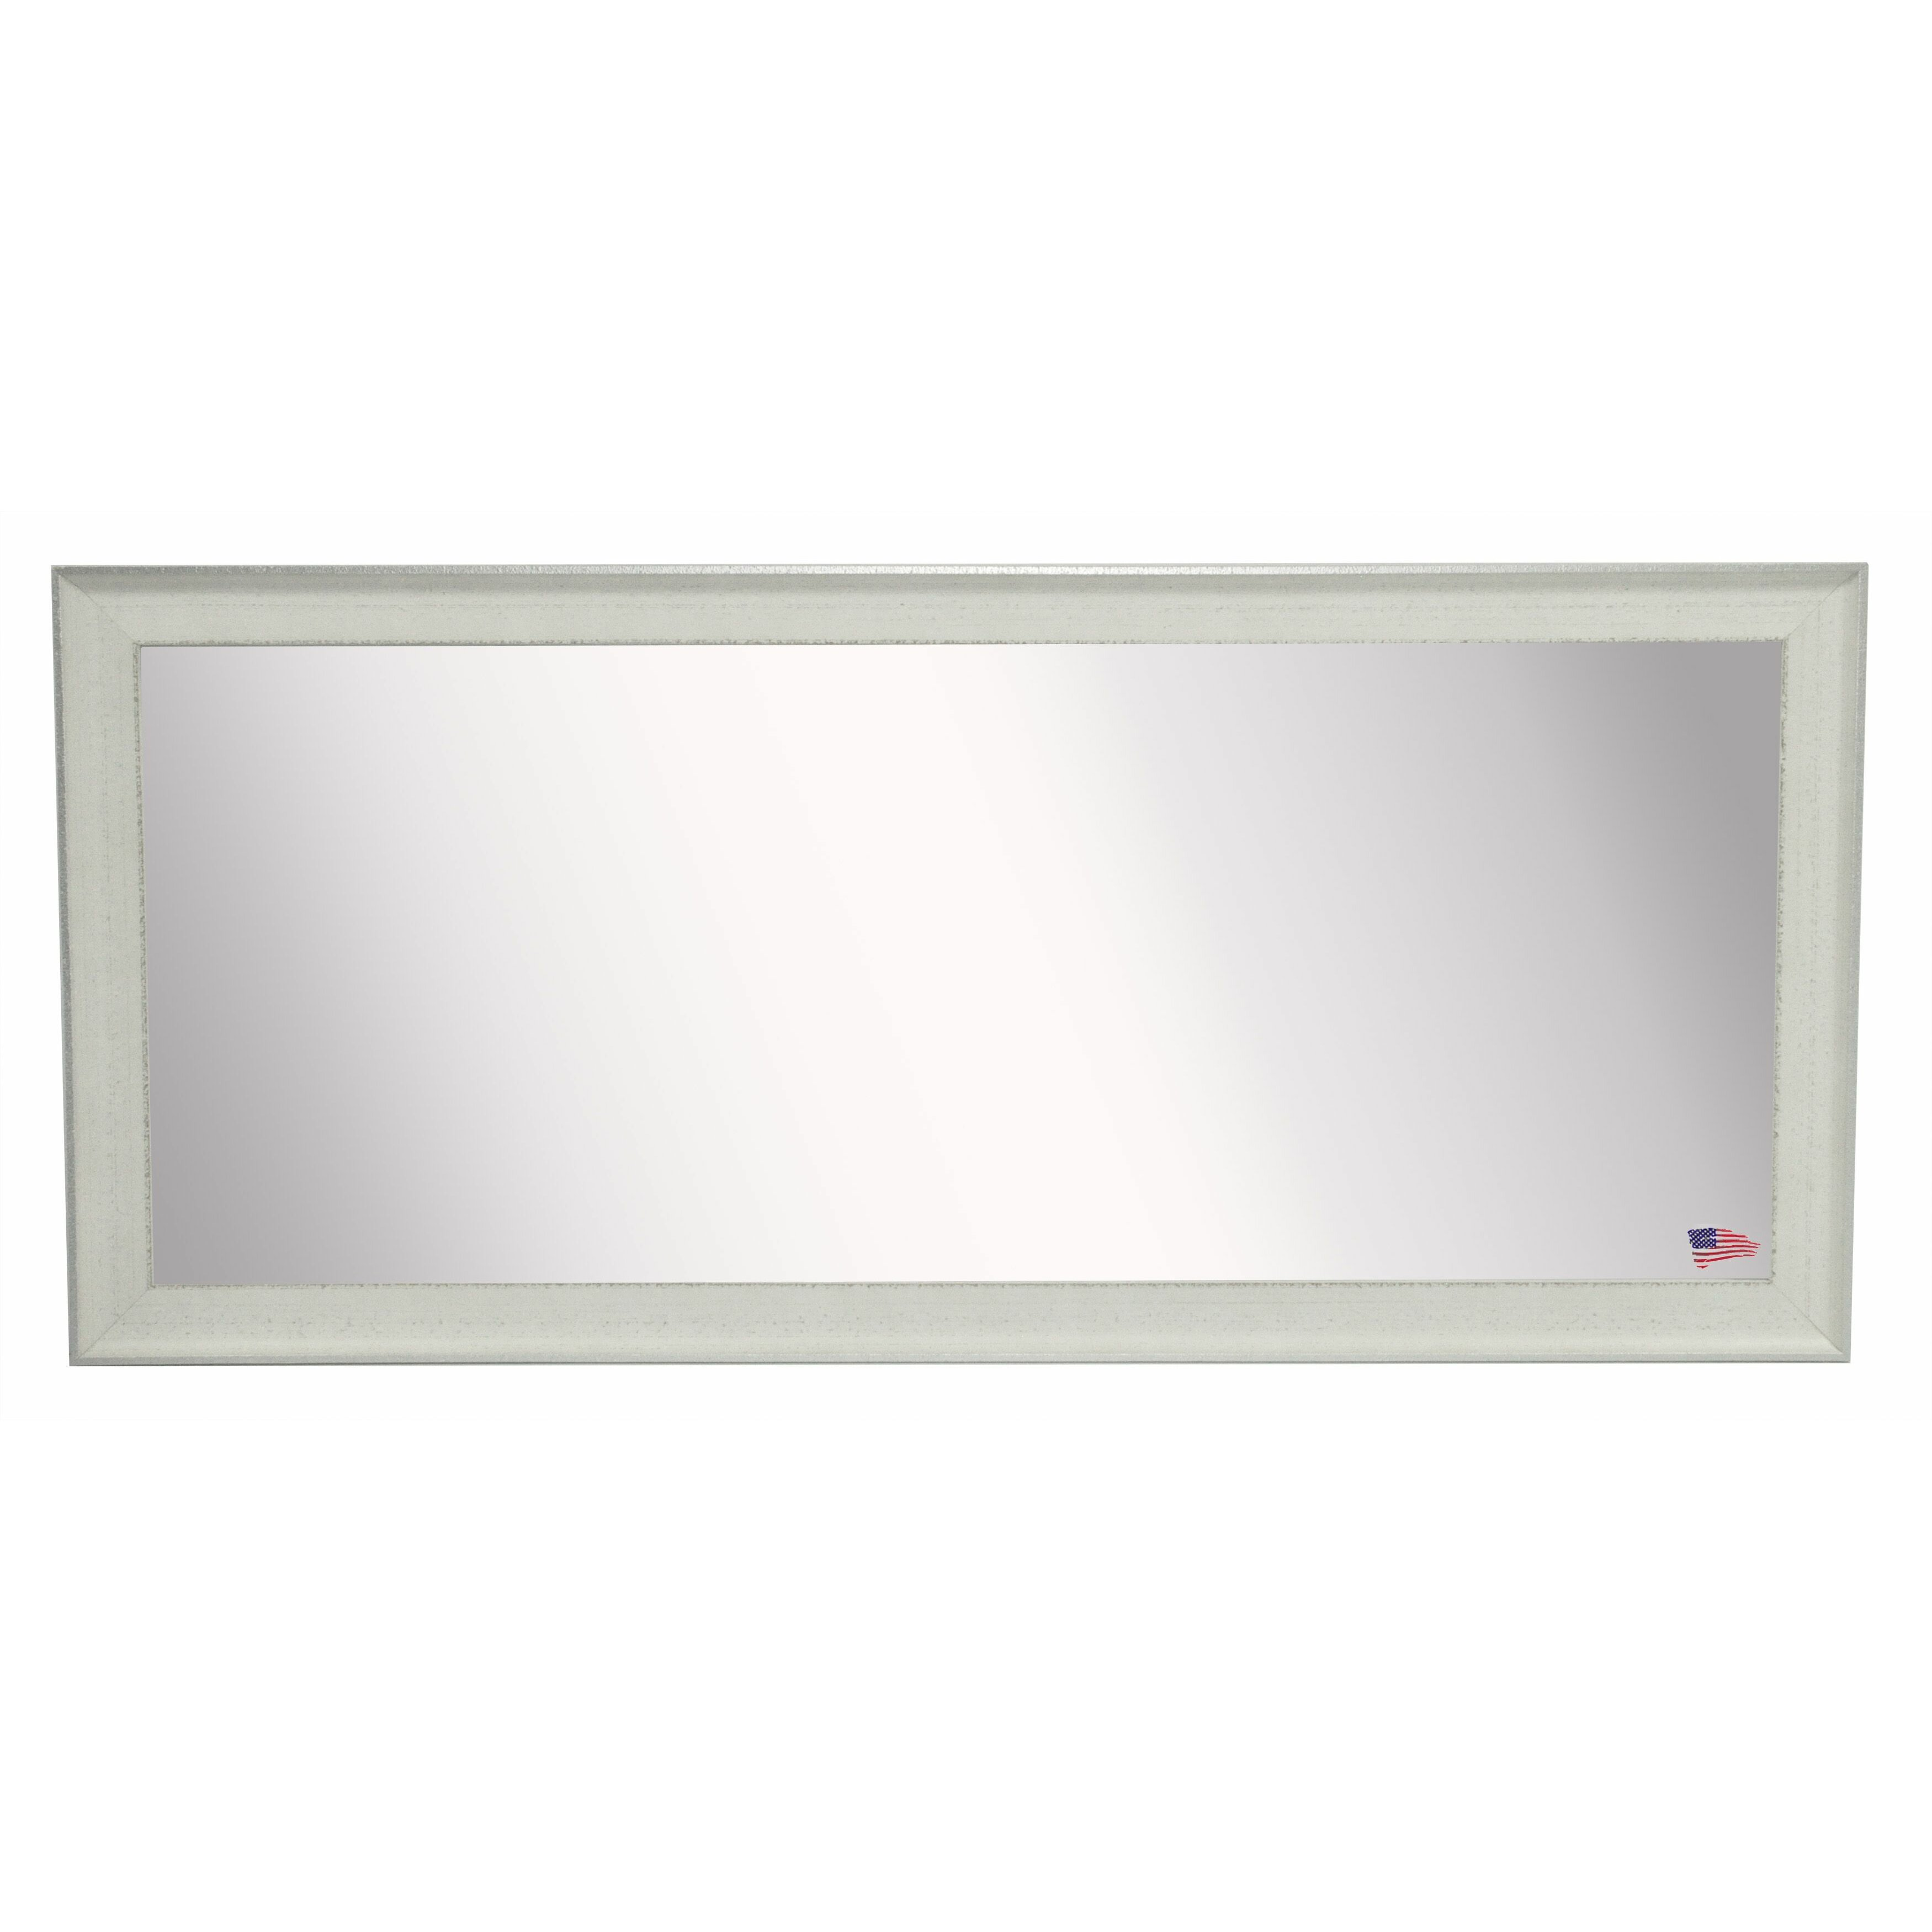 Rayne mirrors ava extra large vintage white mirror wayfair for Large white mirror